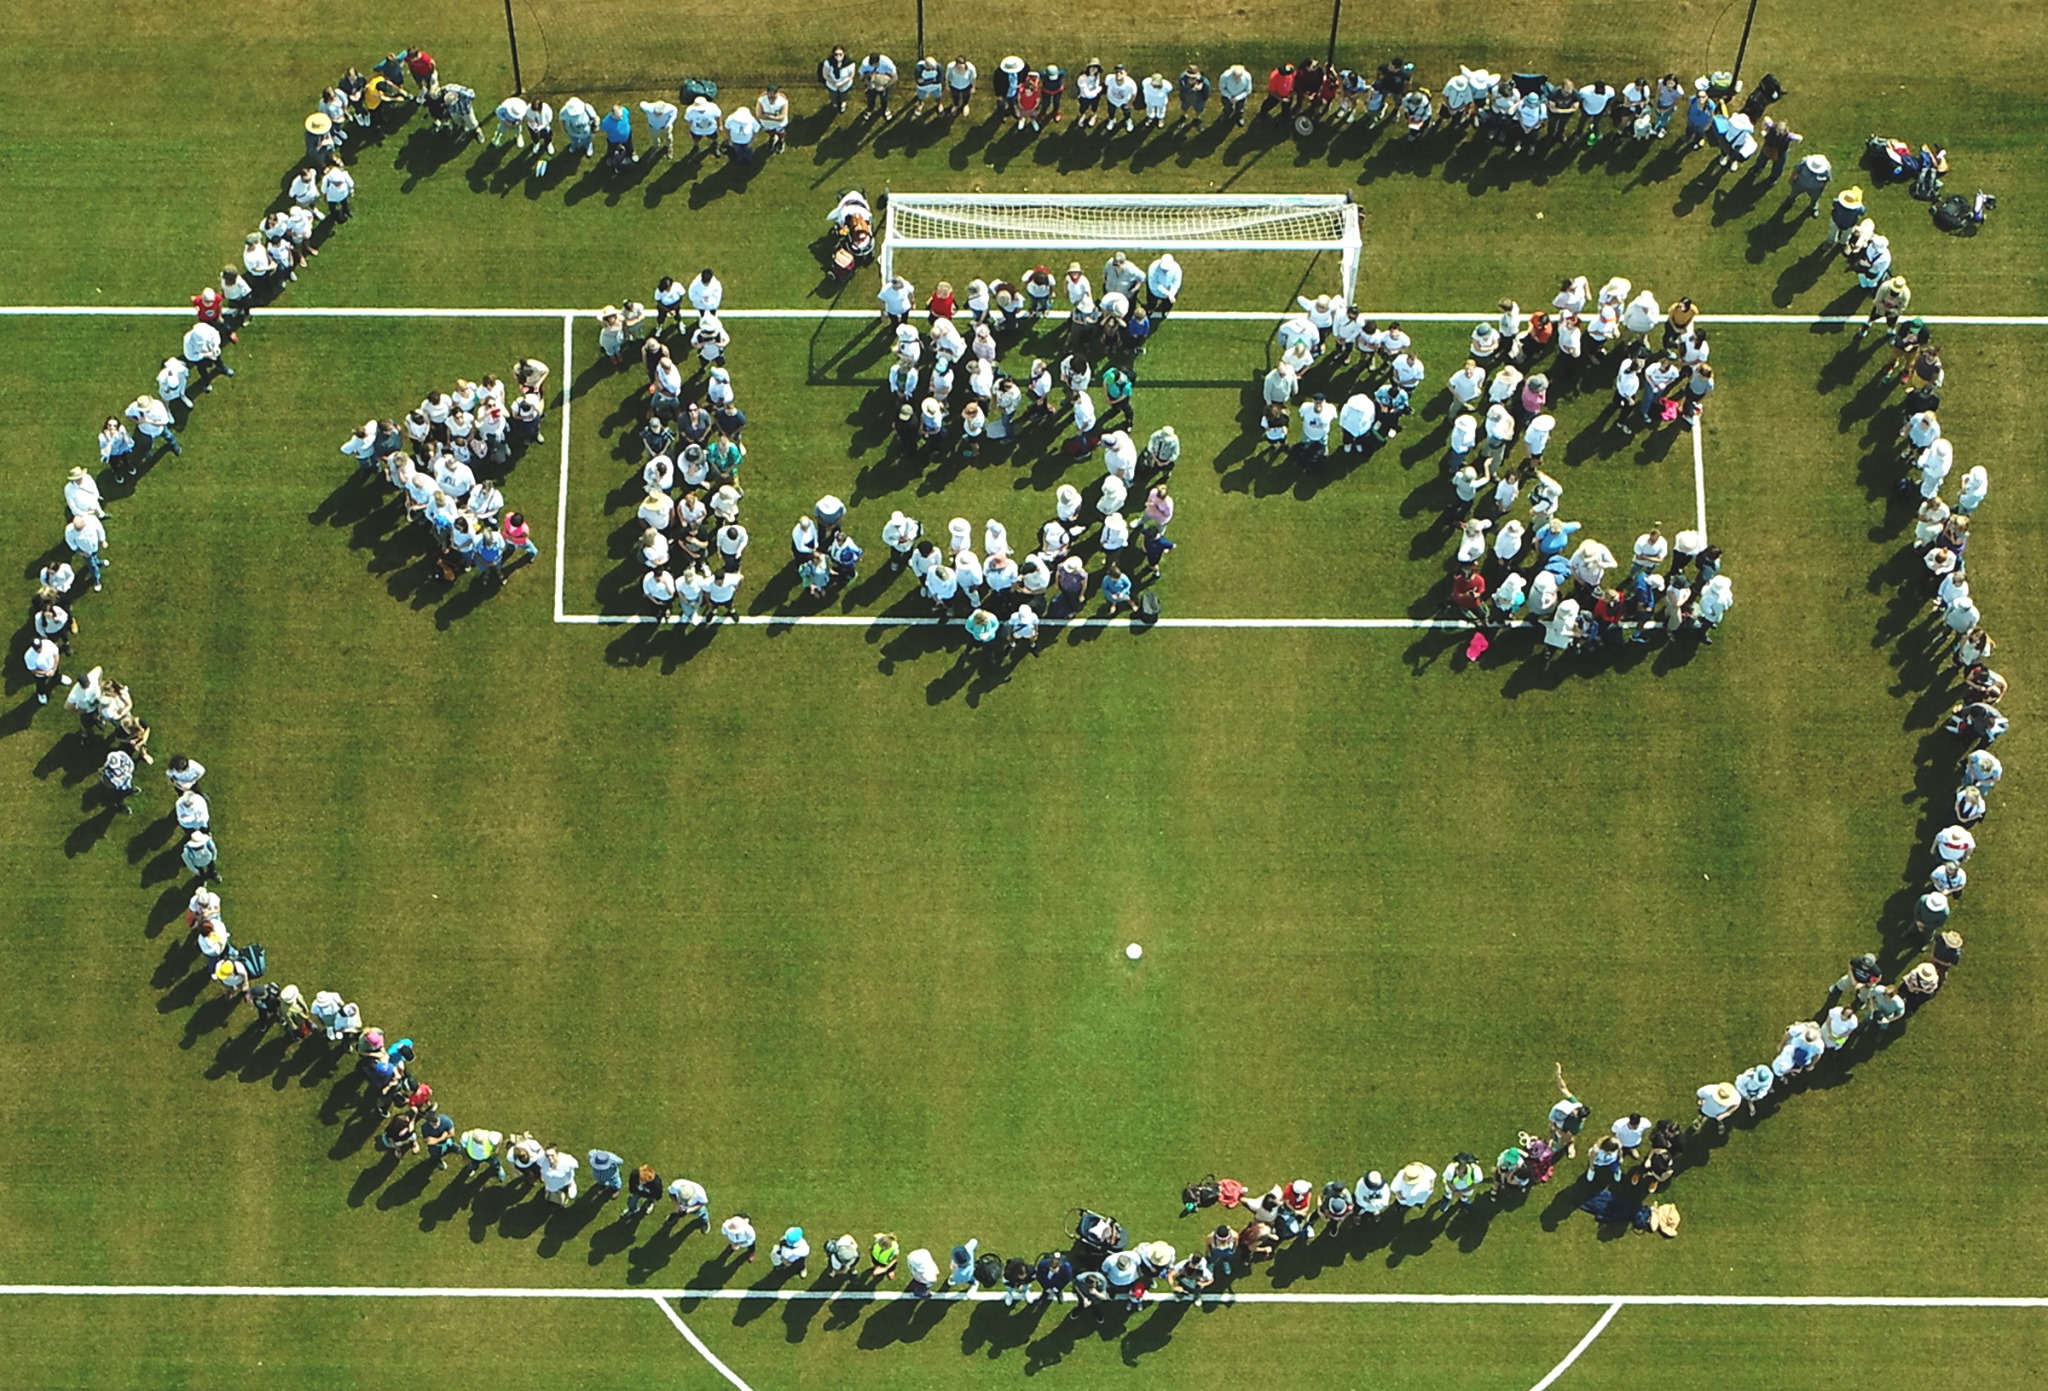 A Human sign calling for global warming to stay below 1.5 degrees